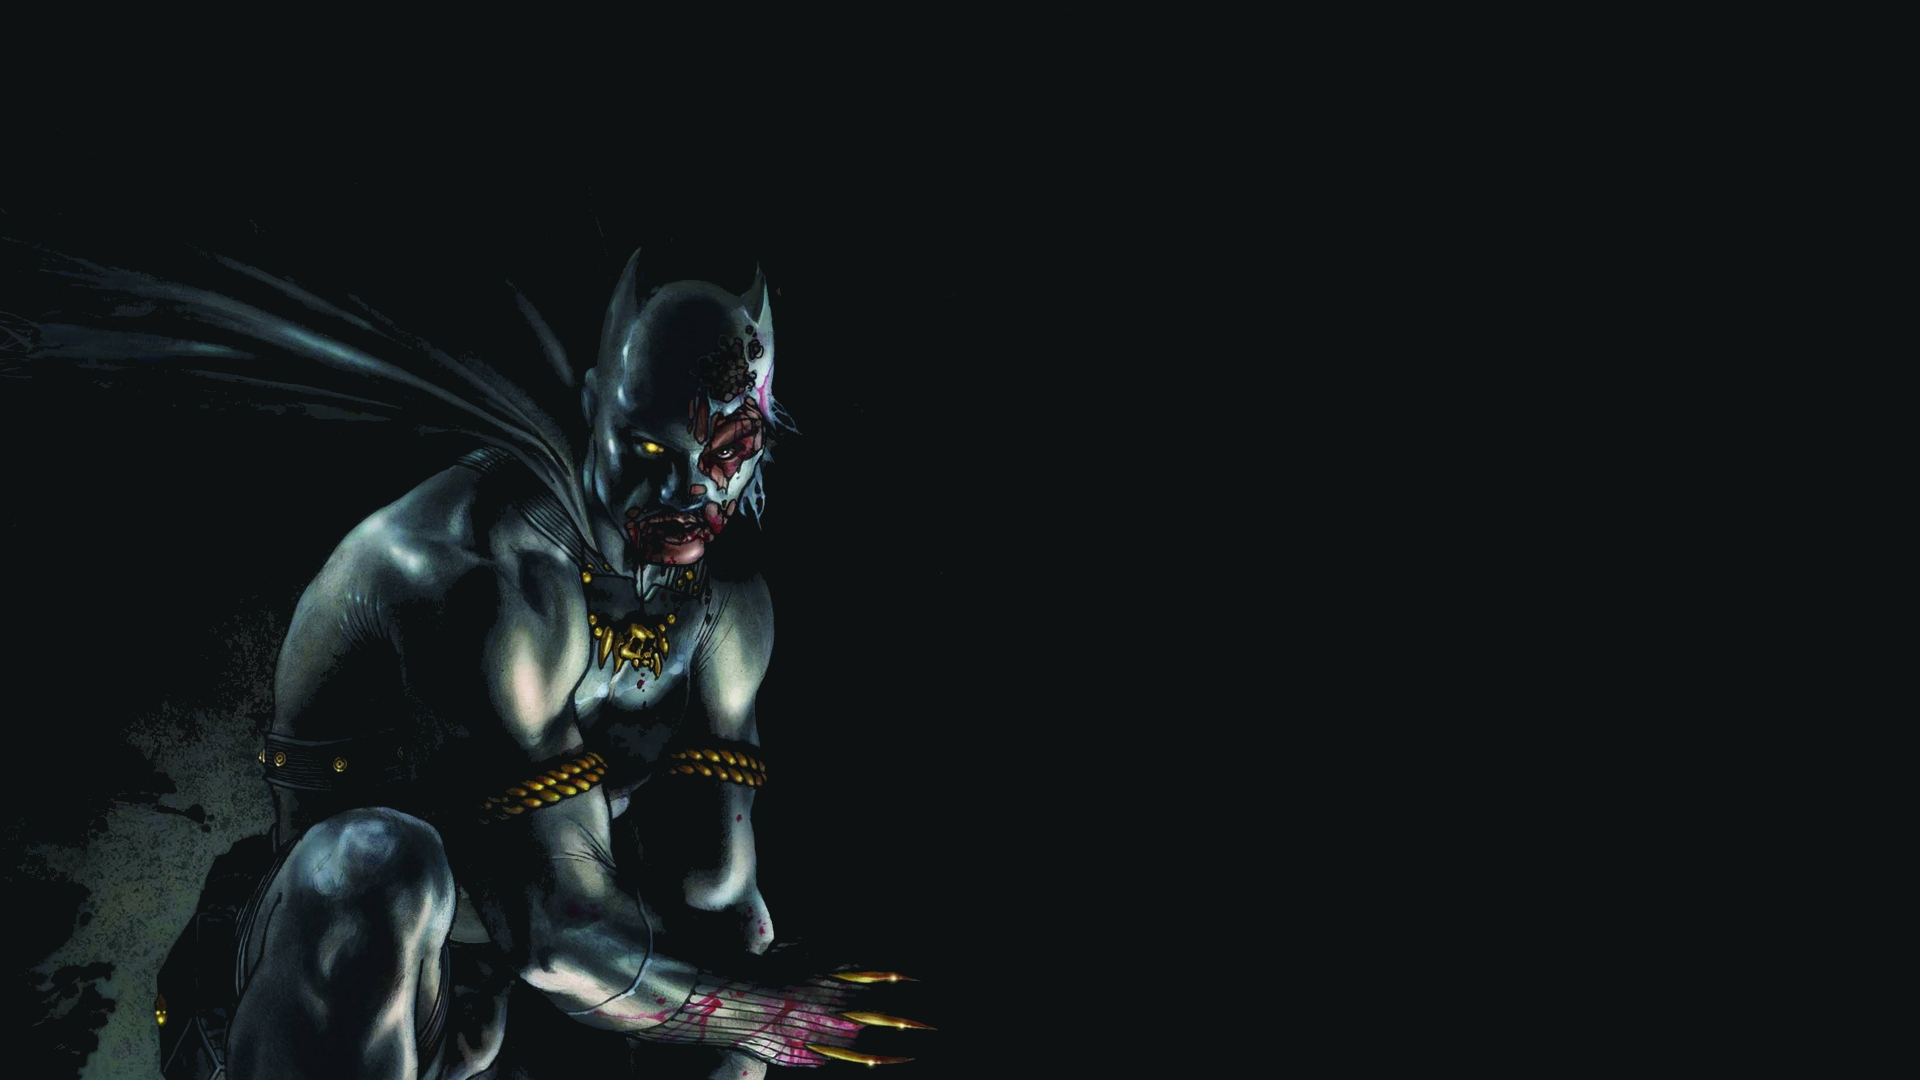 Black Panther Full HD Wallpaper and Background Image 1920x1080